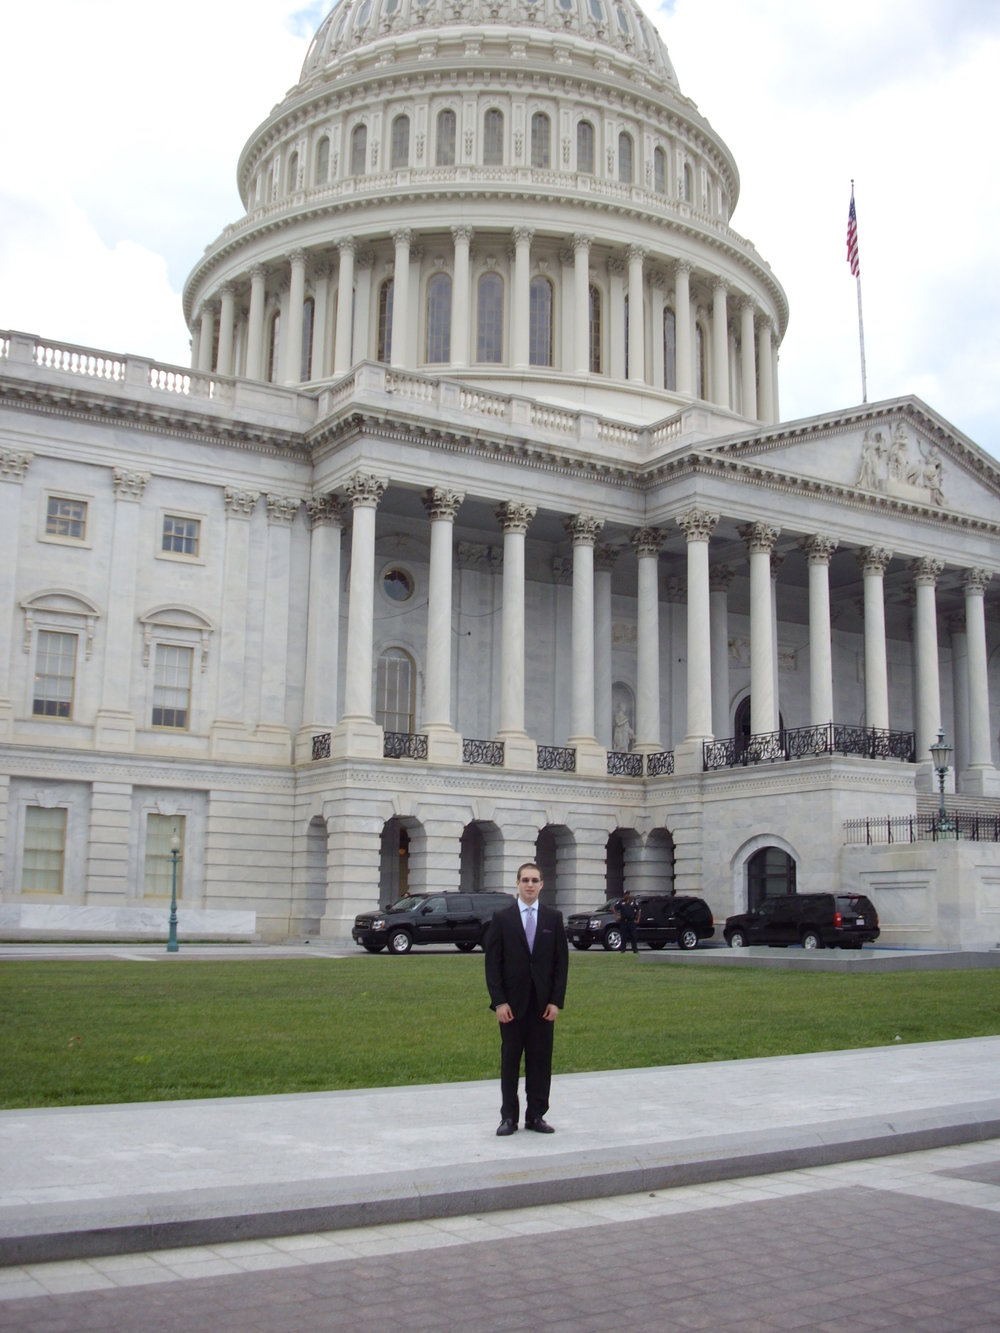 Outside the Capitol Building in May 2011.